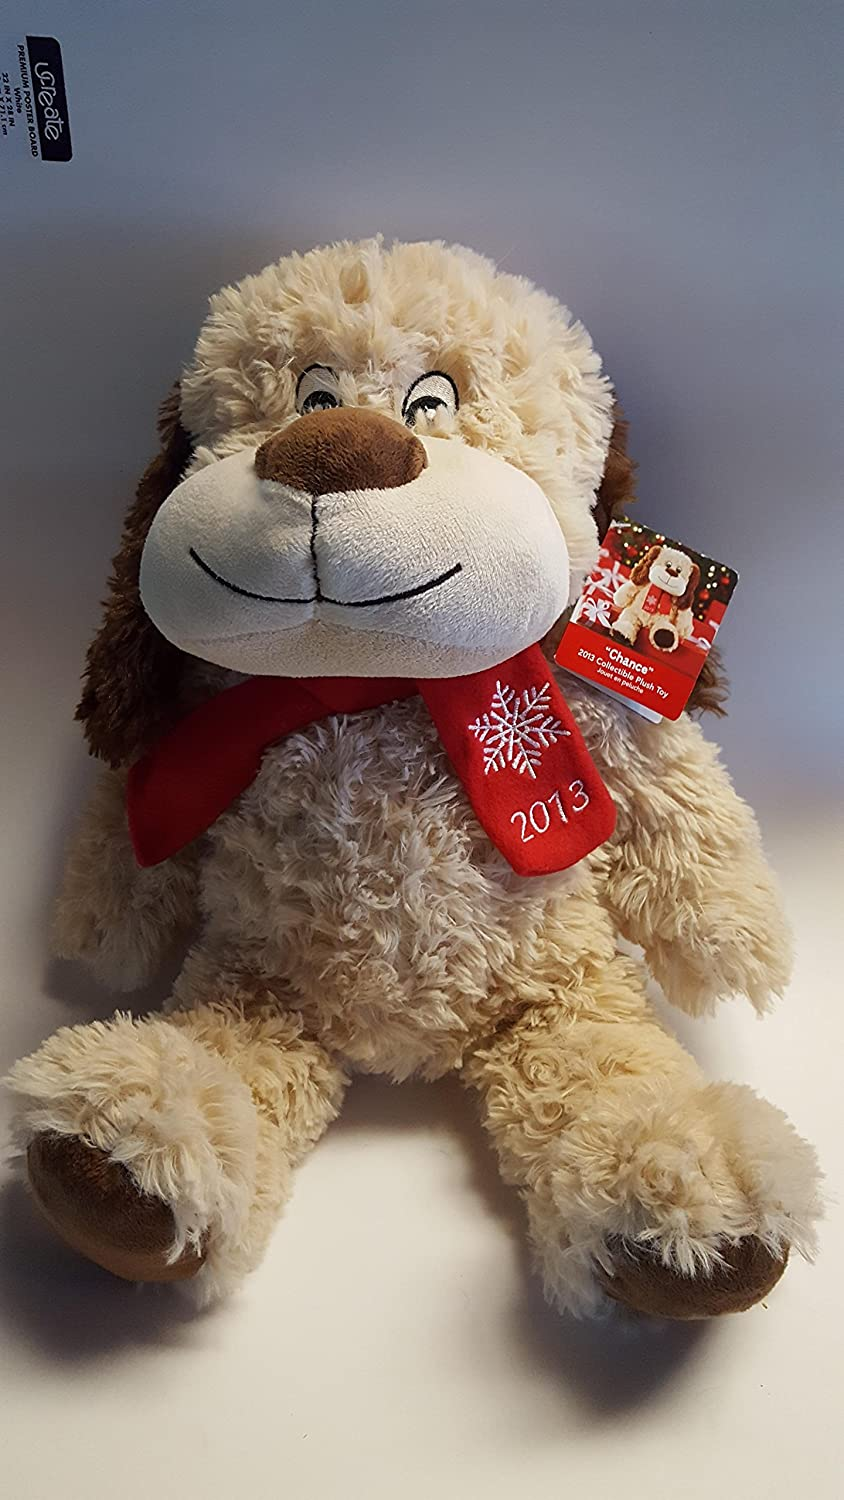 Chance 2013 Collectible Plush Toy